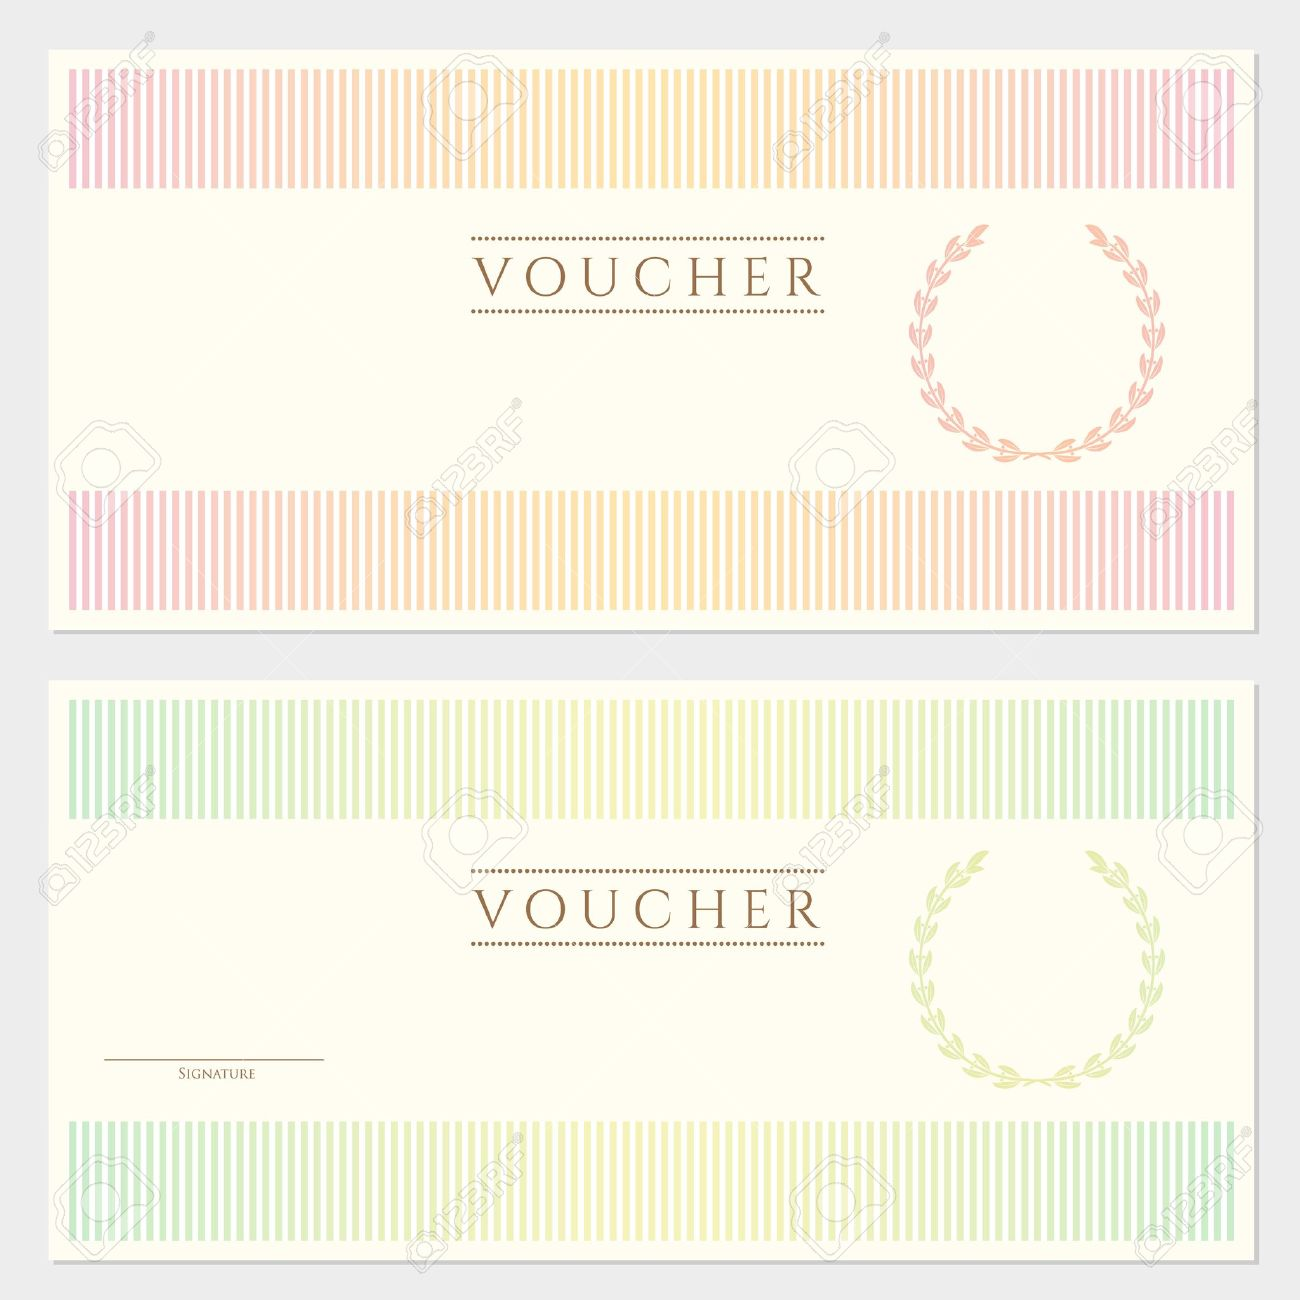 Voucher Template With Colorful Stripy Pattern And Border This – Money Voucher Template